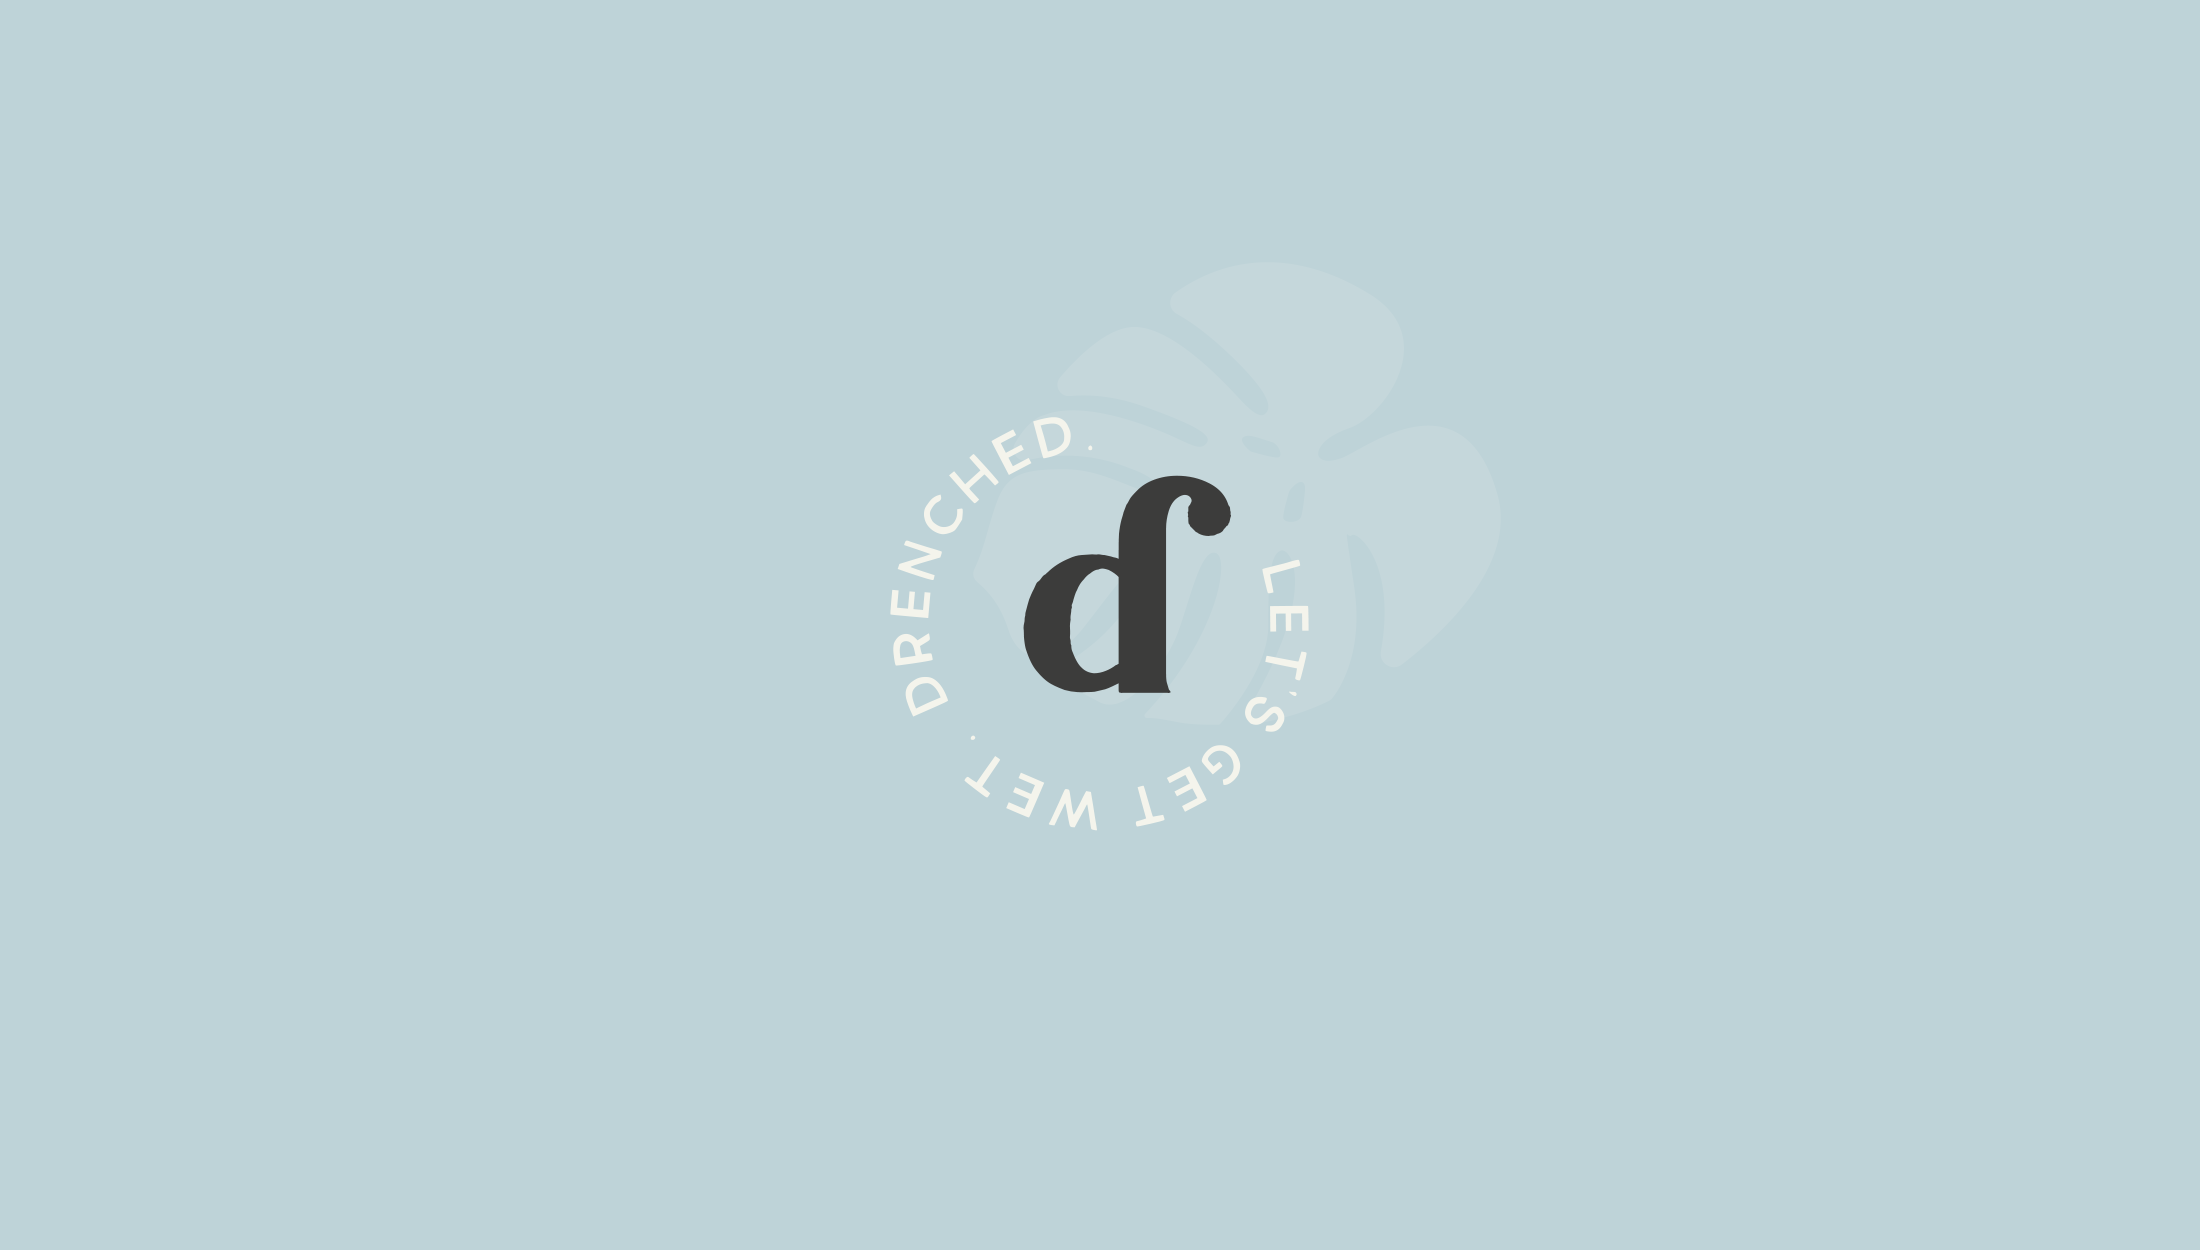 Logo mark design for Drenched, selling luxury products that are essential for water-based needs - designed by Wiltshire-based graphic designer, Kaye Huett